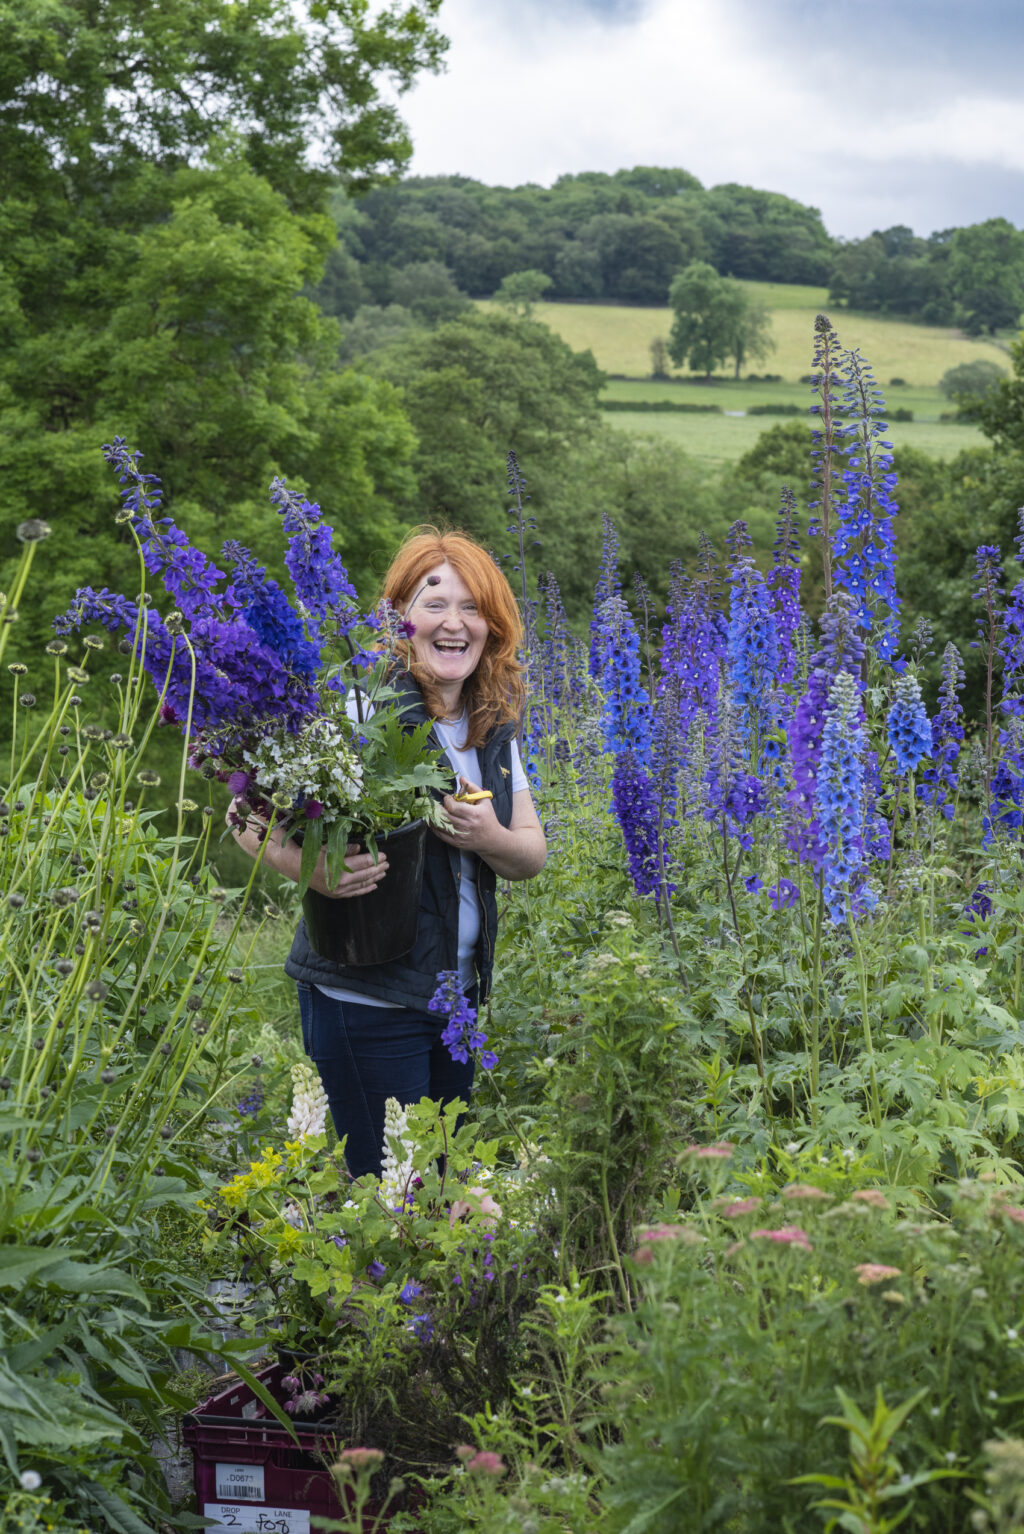 Pam of Quirky Flowers cuts buckets of towering blue delphiniums on her Staffordshire flower farm with the rolling hills of the local countryside in the background.